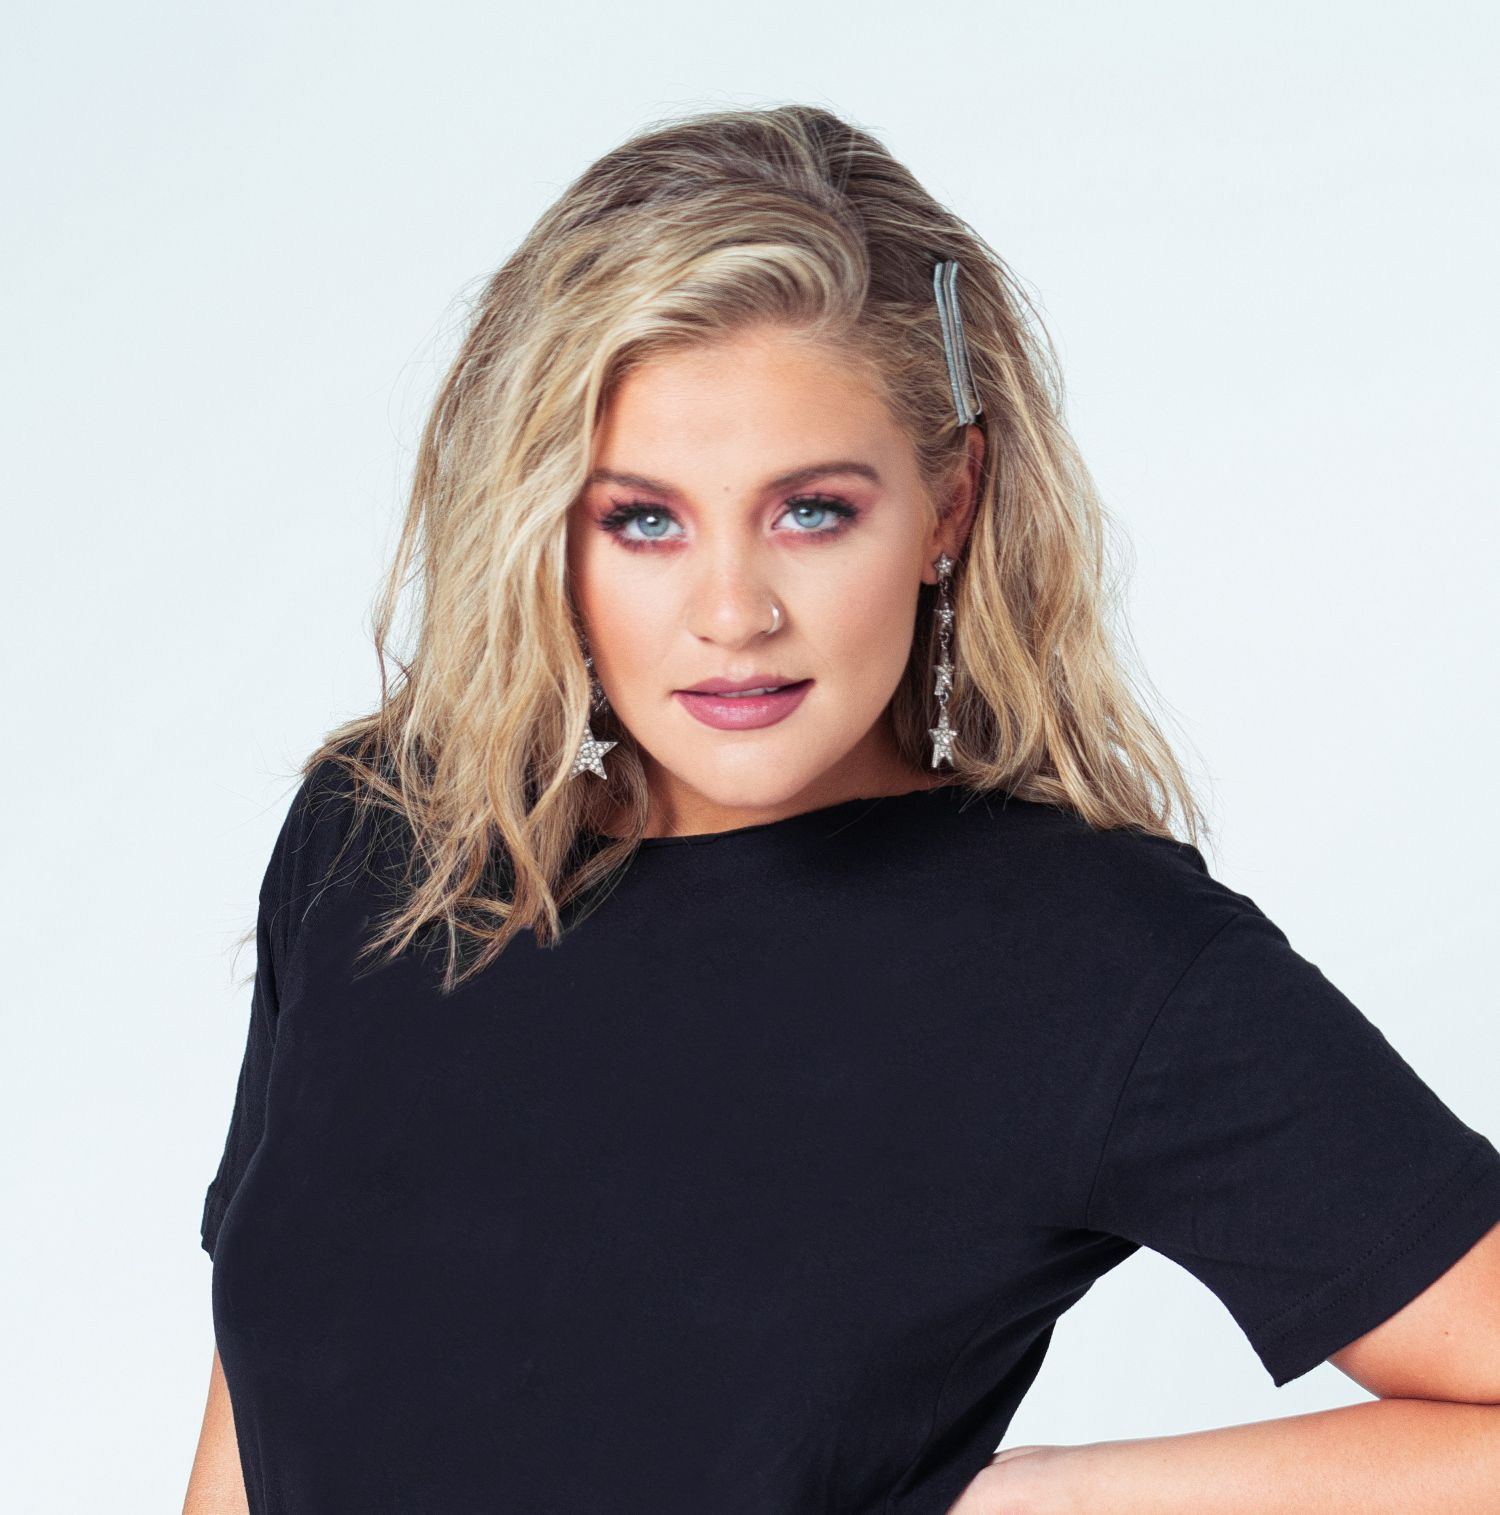 Lauren Alaina Performance Added To FOX's New Year's Eve